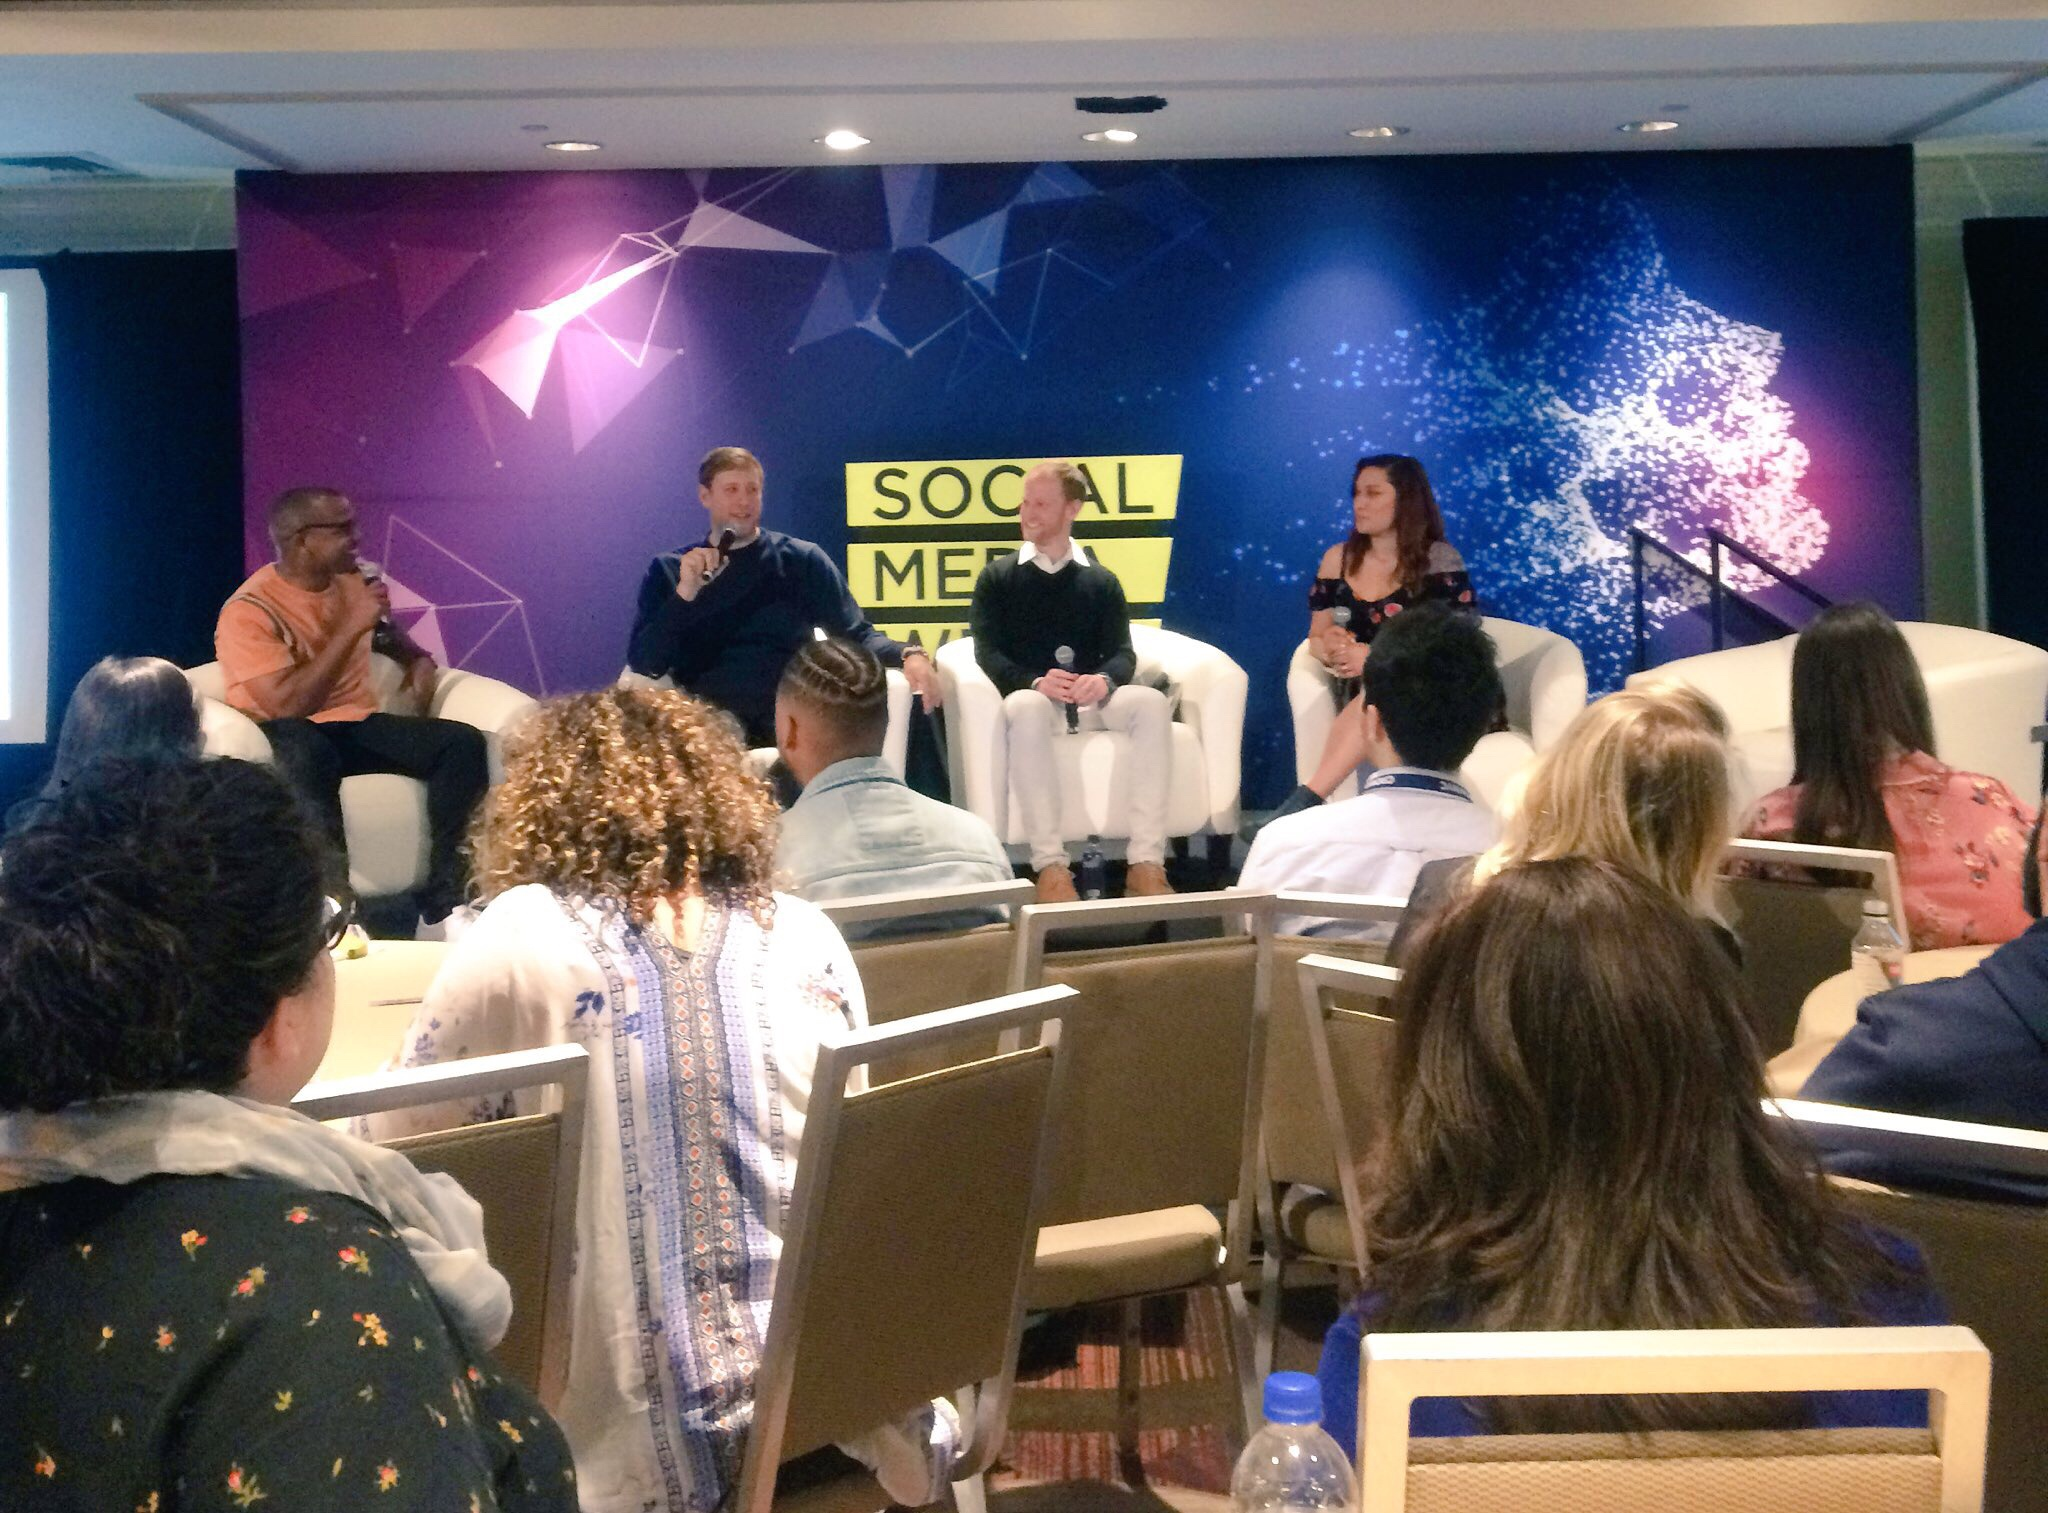 Panel discussion, called 'How Instagram Became The Music Industry's Go-To Social Platform